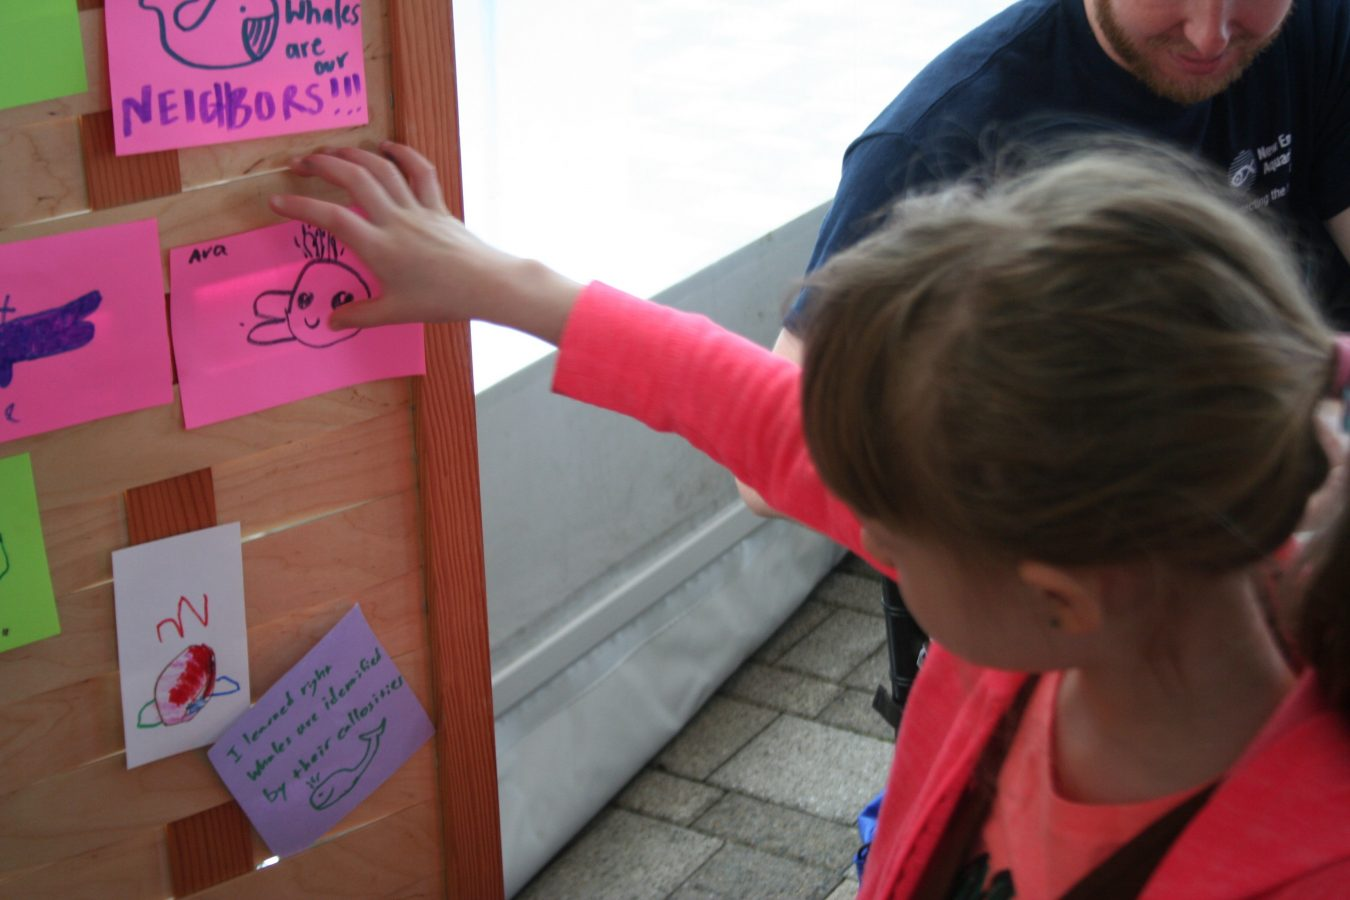 A girl posts her drawing at the New England Right Whale Festival on May 6, 2018.